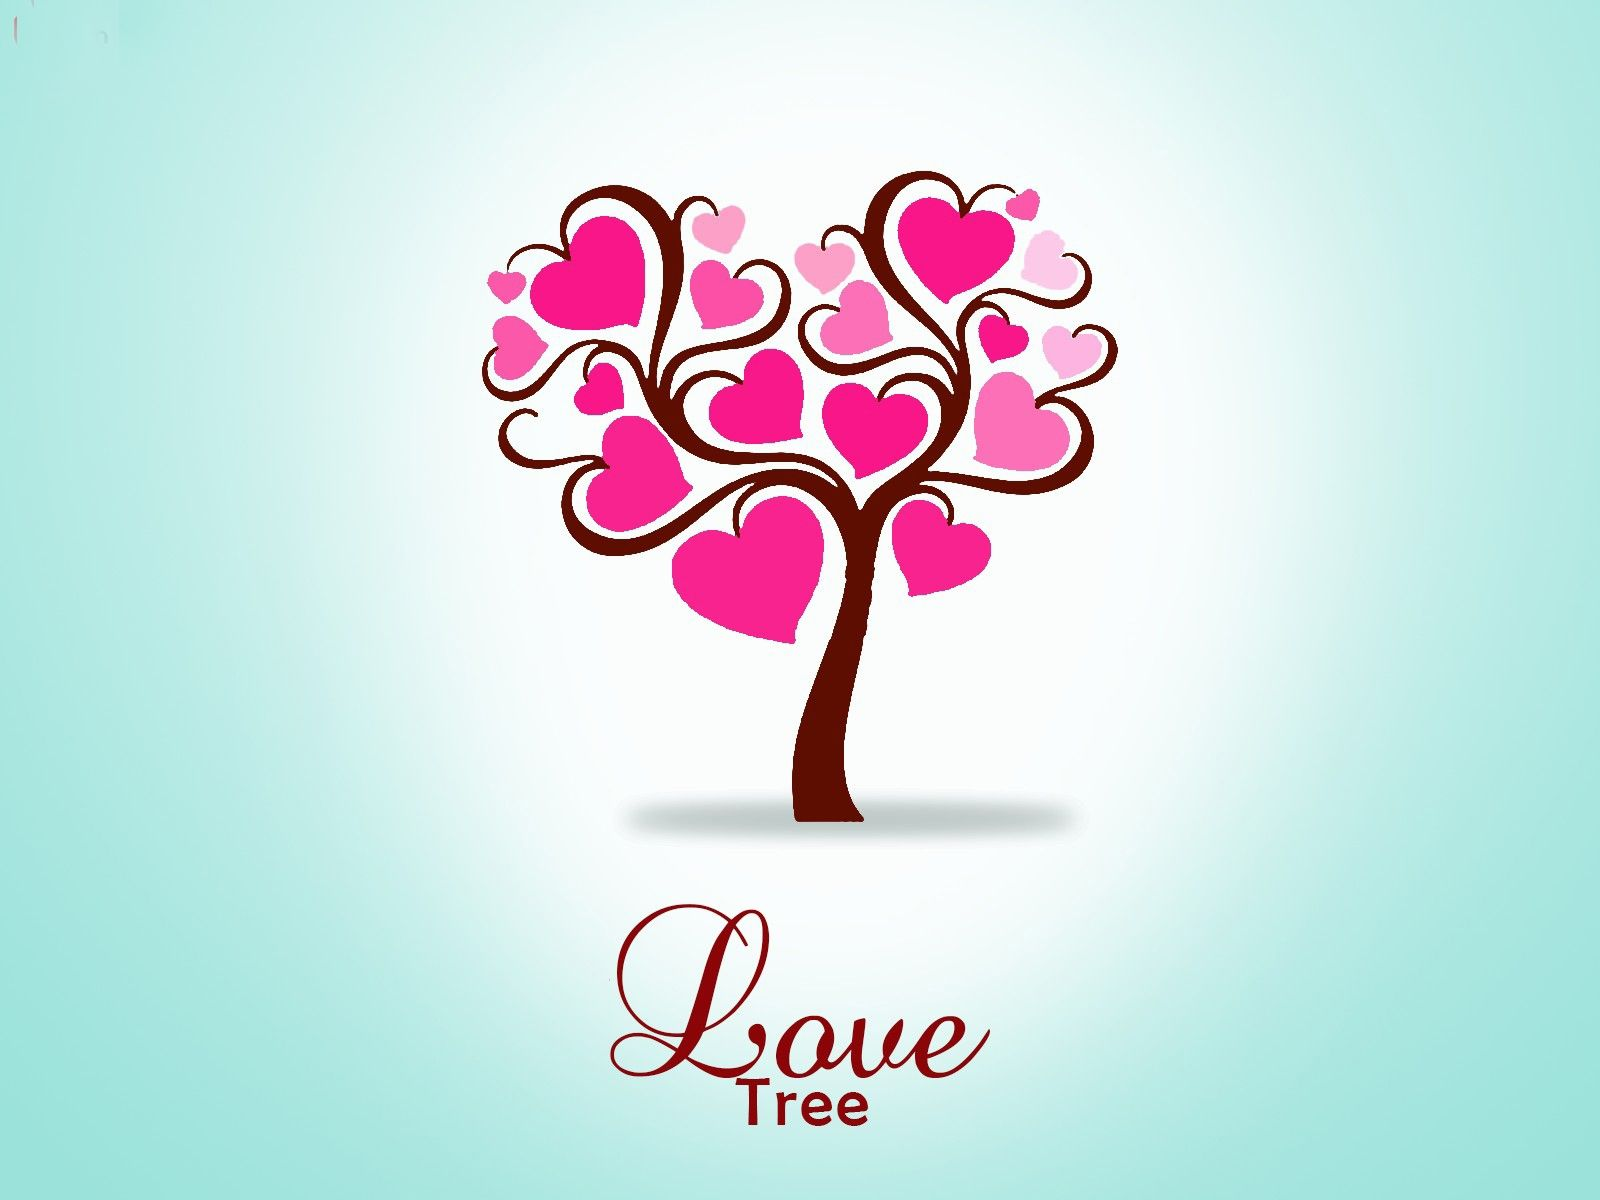 Lg cute Love Wallpaper : download love and romantic wallpaper for whatsapp download love and romantic? Hearts ???? ...